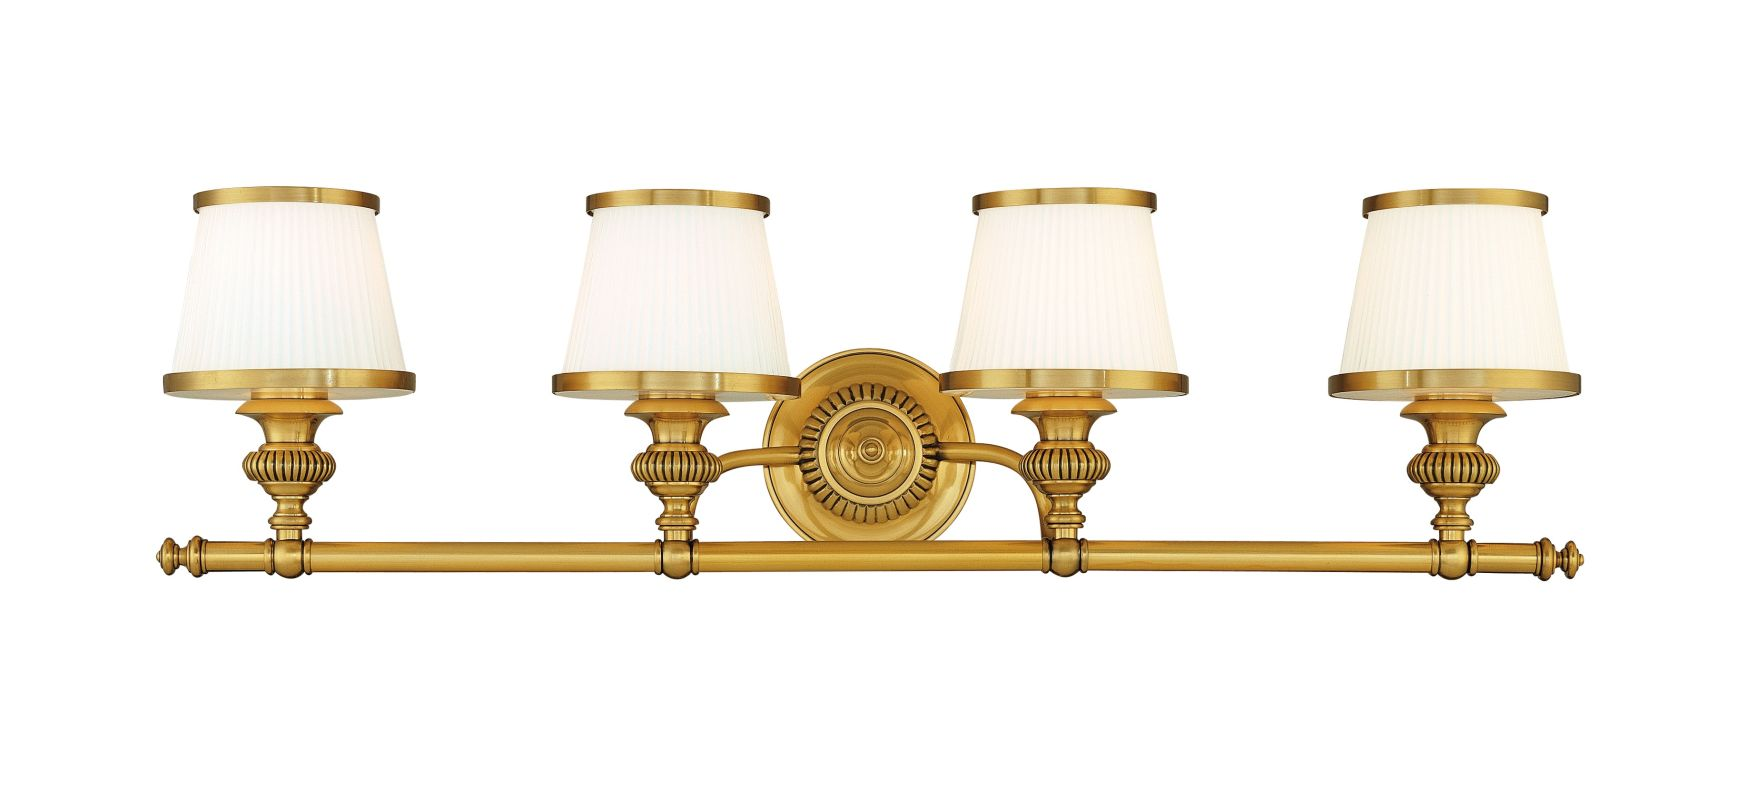 Hudson Valley Lighting 2004 Four Light Wall Sconce from the Milton Sale $536.00 ITEM#: 982408 MODEL# :2004-FB UPC#: 806134097868 :